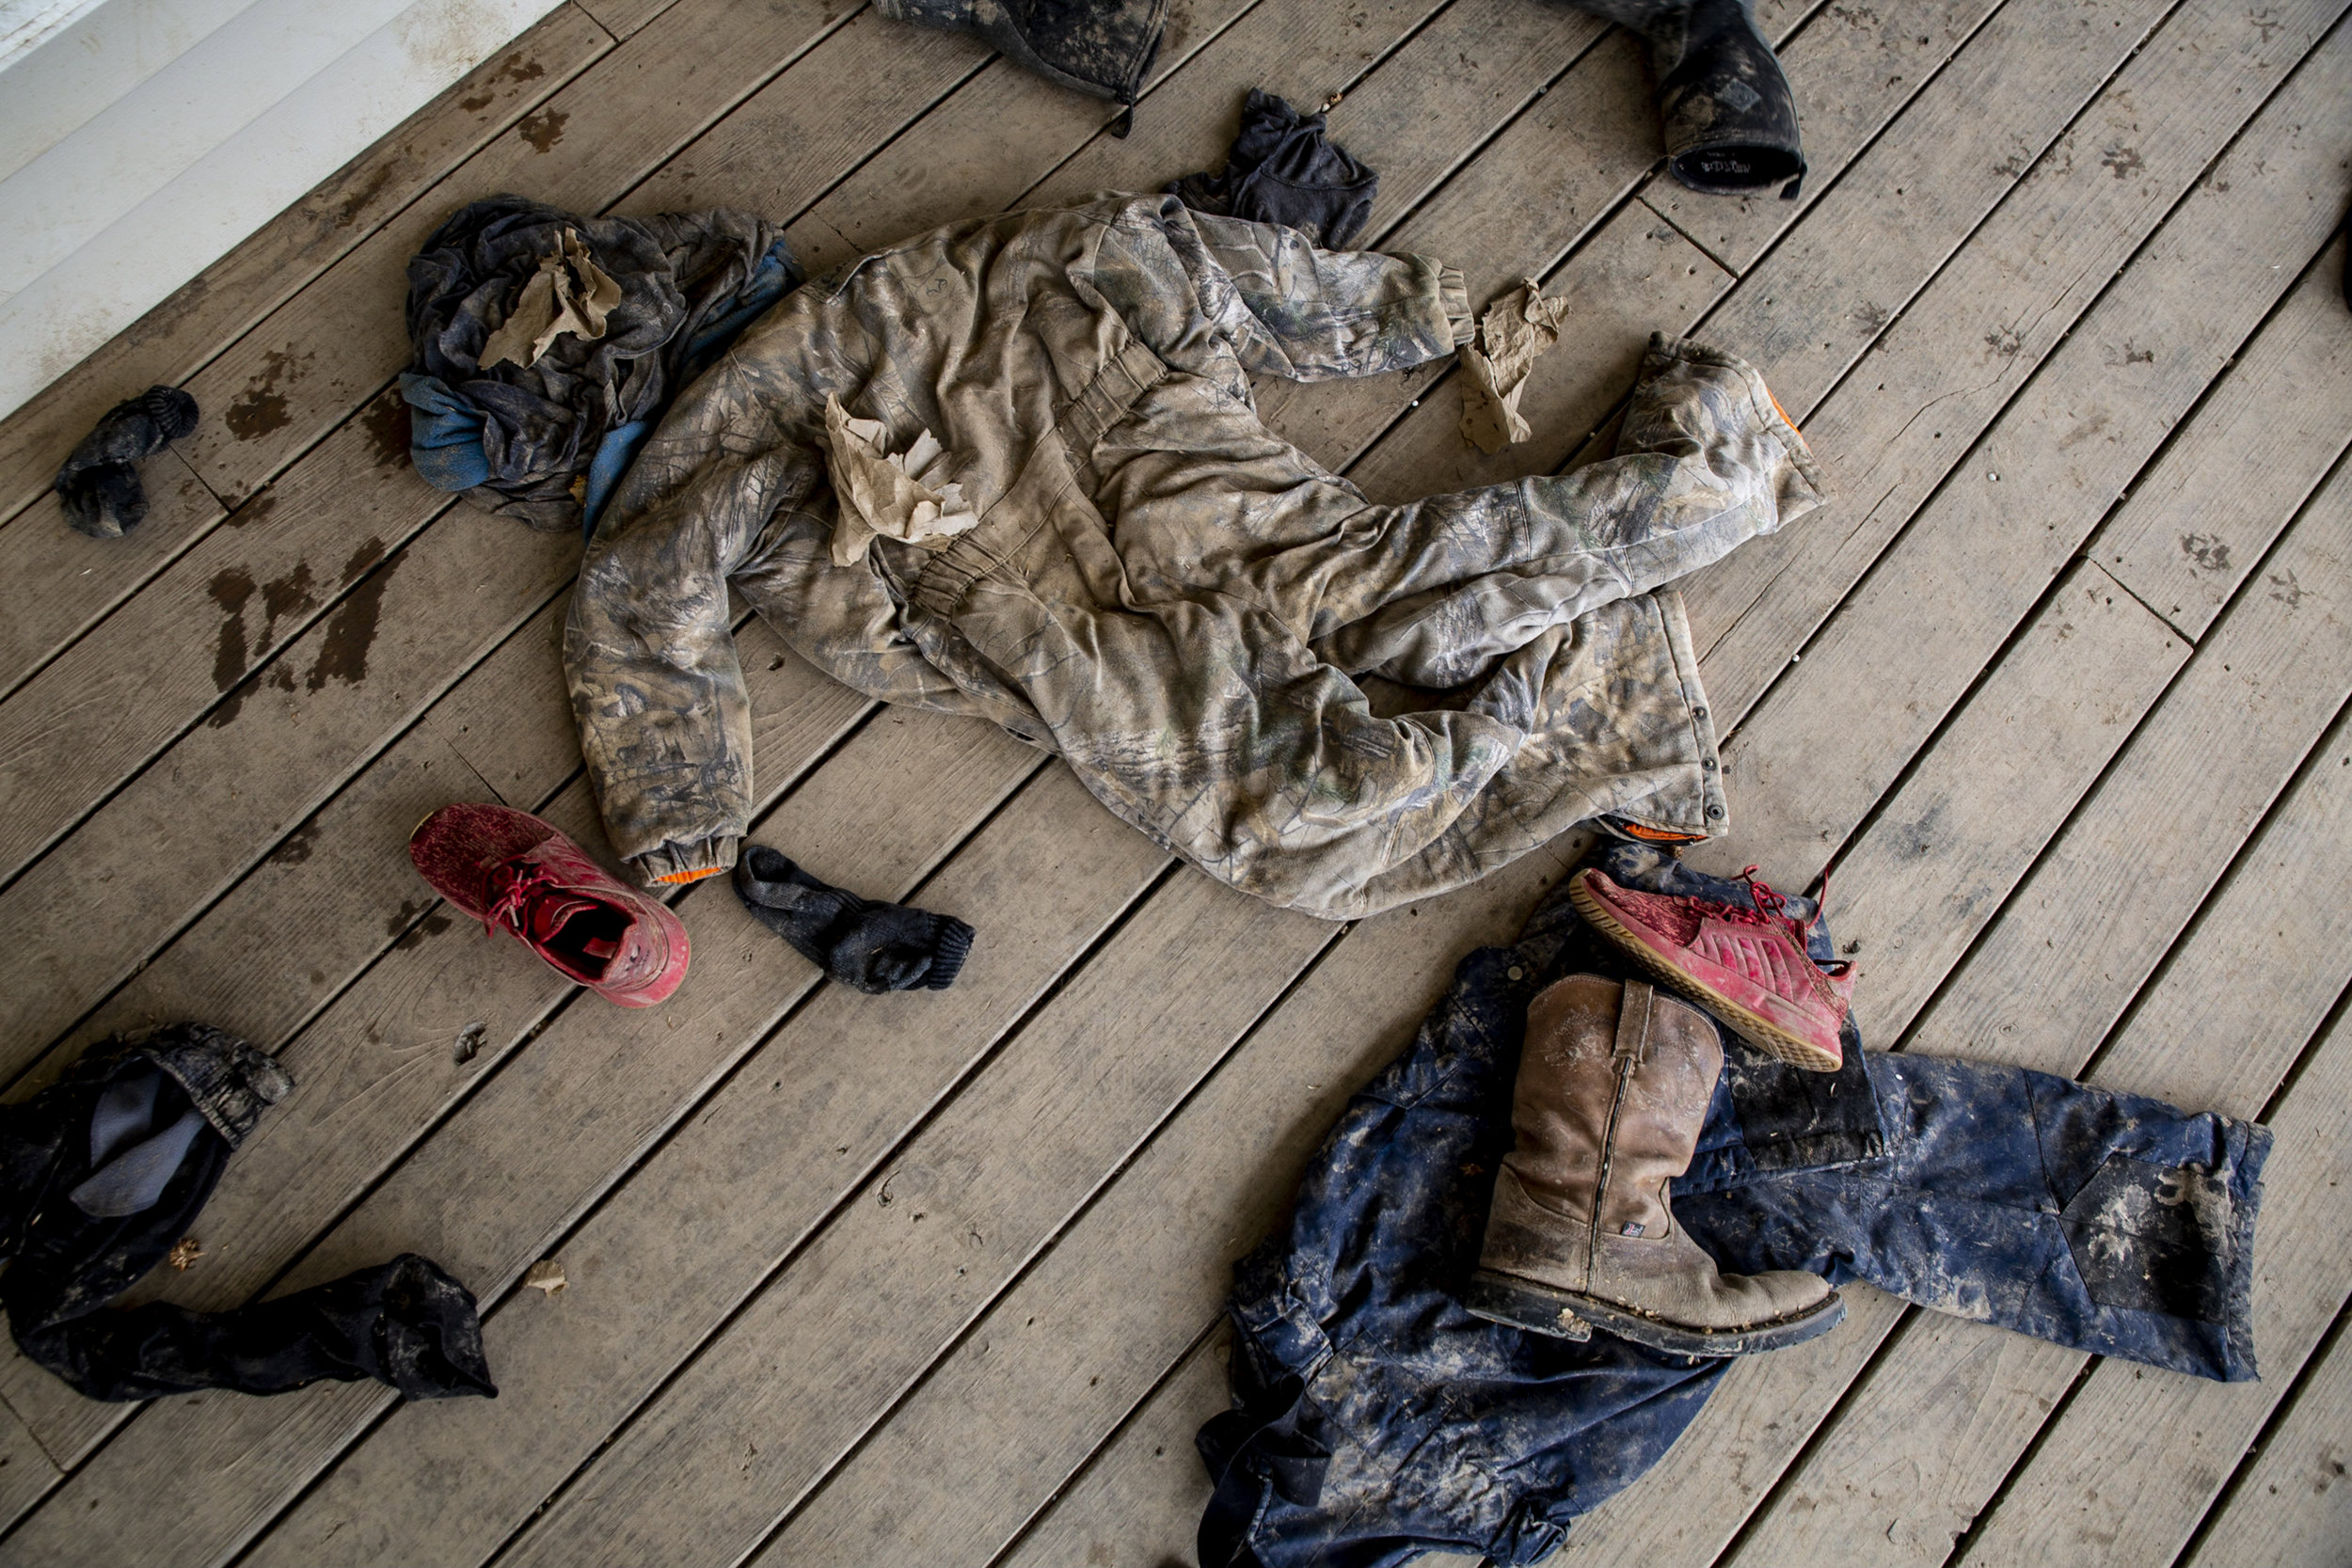 """Muddy clothes adorn the porch of Nick and Tricia Russell's home. """"I can't do a house with a yard and people living next door to me,"""" said Nick Russell, who grew up in Sharpsburg and is now raising his sons there."""